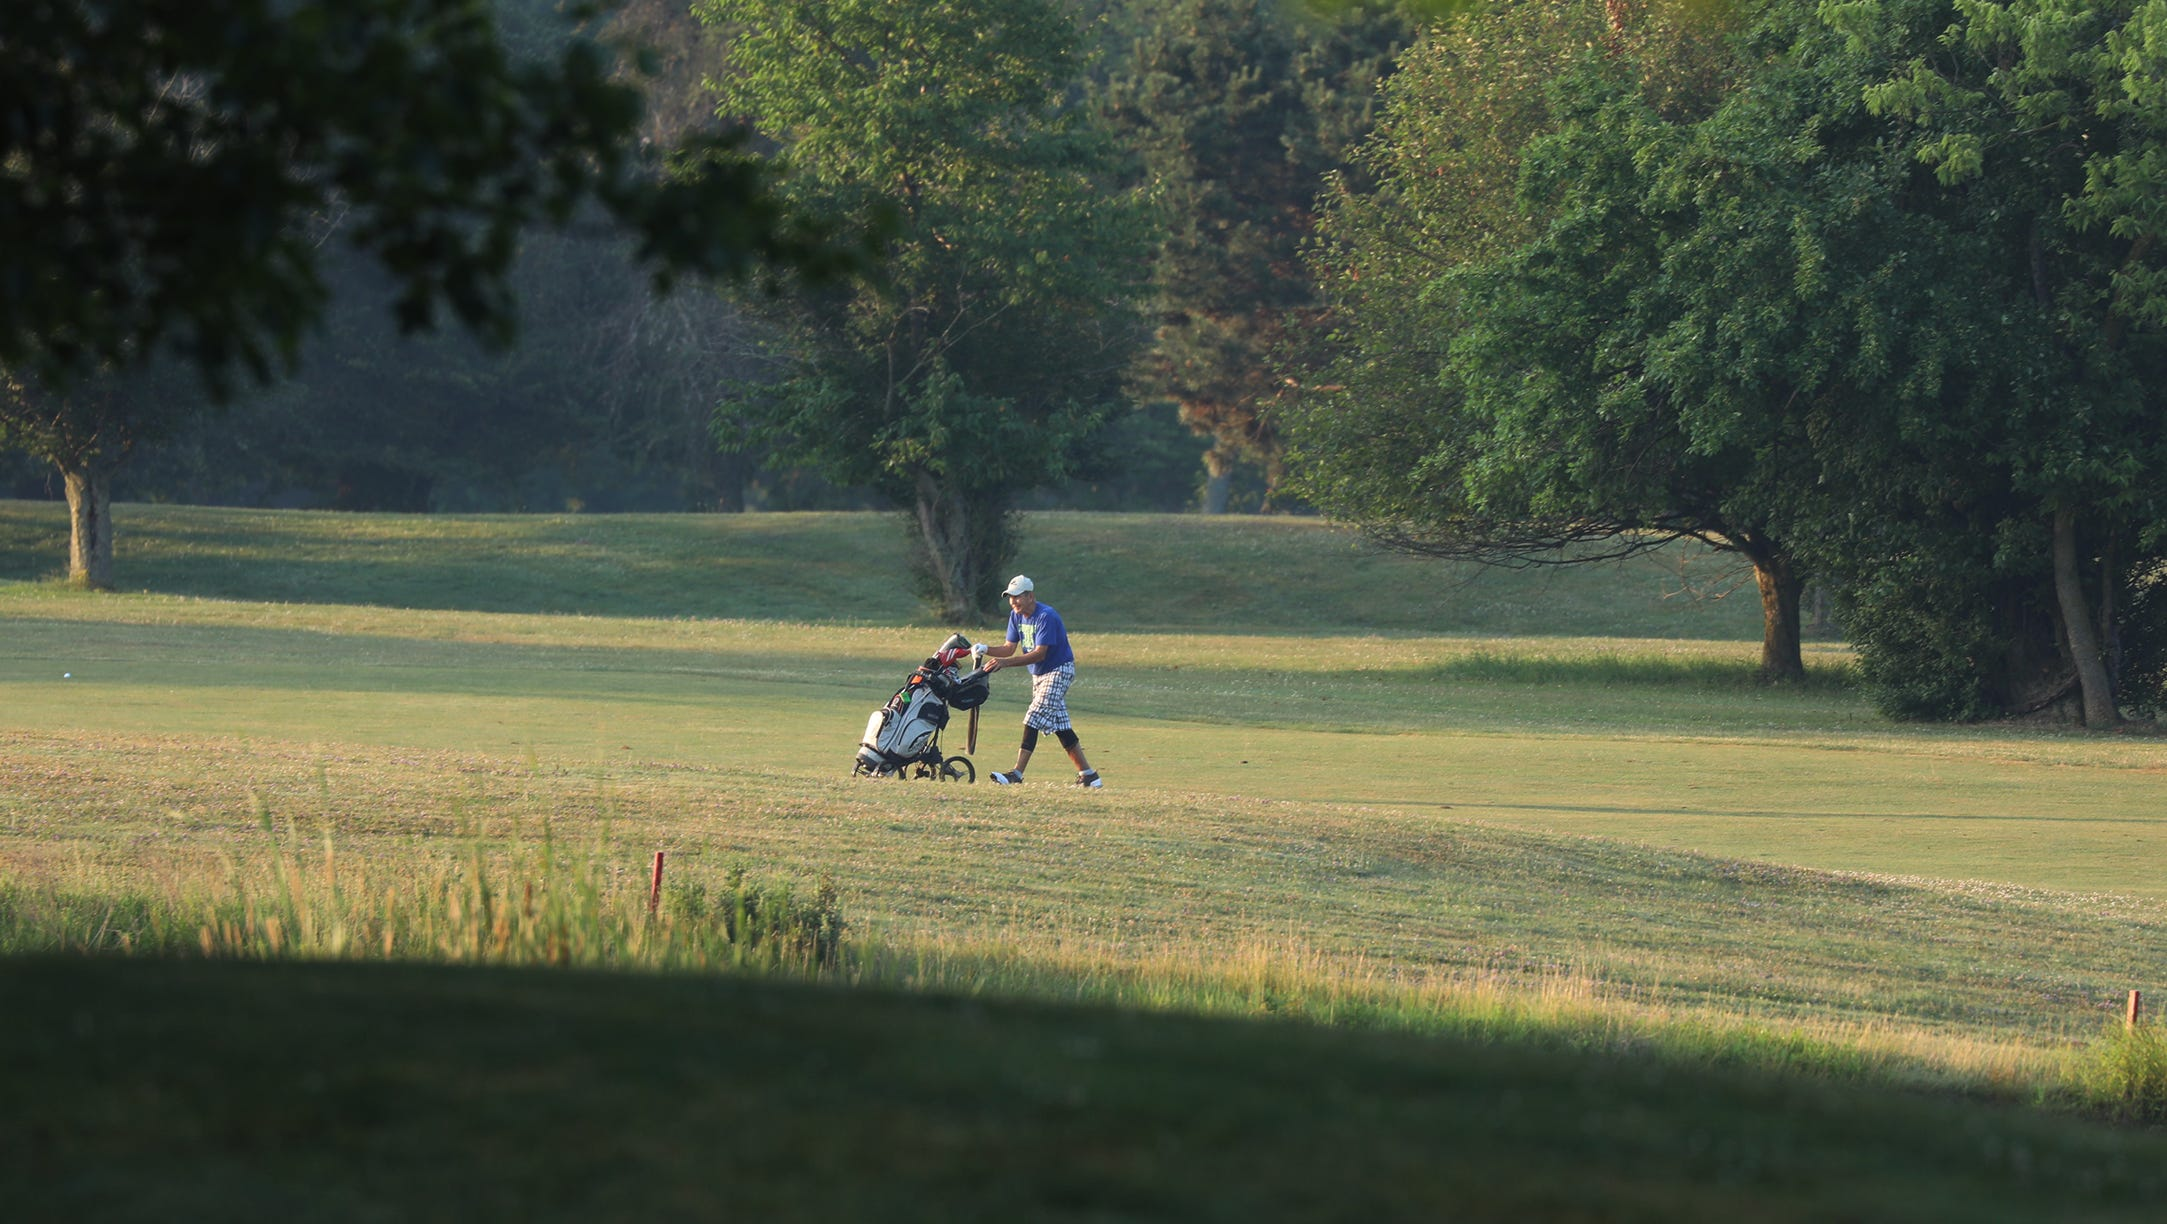 Monrie County Public Golf Courses Closed Due To Covid 19 Pandemic